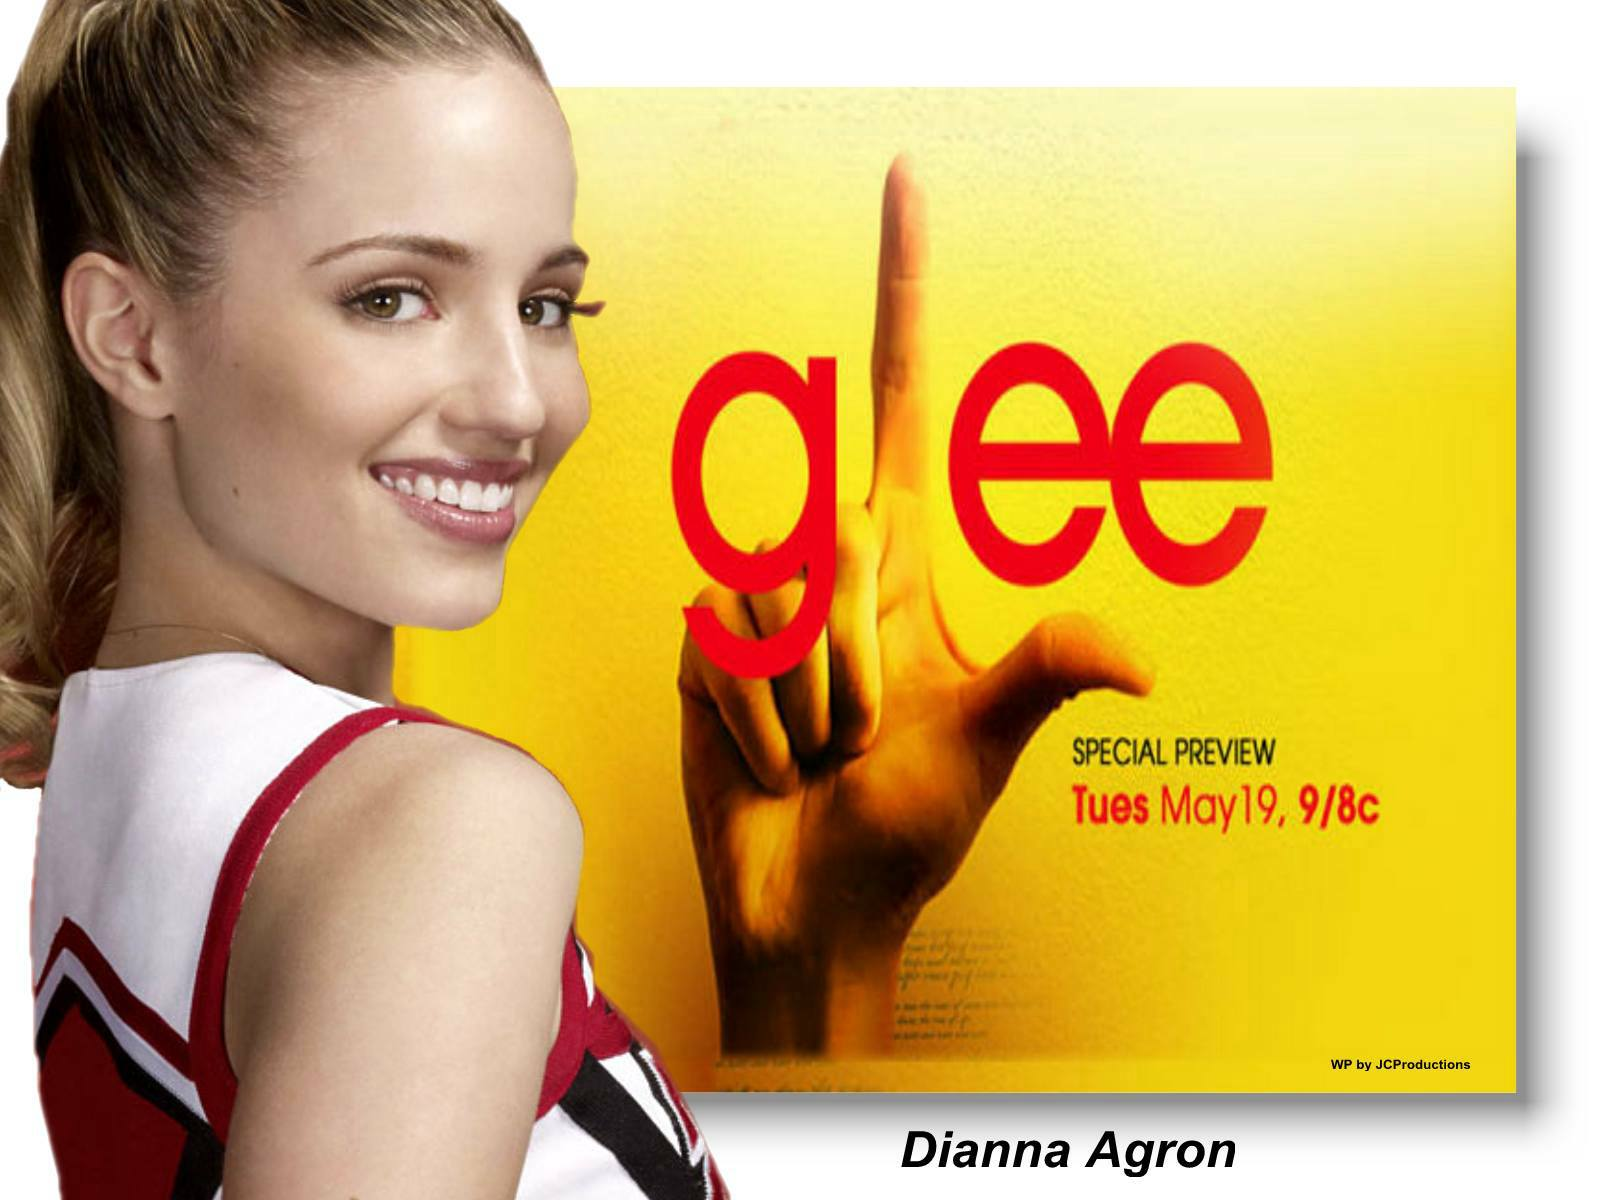 The Glee Girls images Dianna Agron of Glee HD wallpaper and